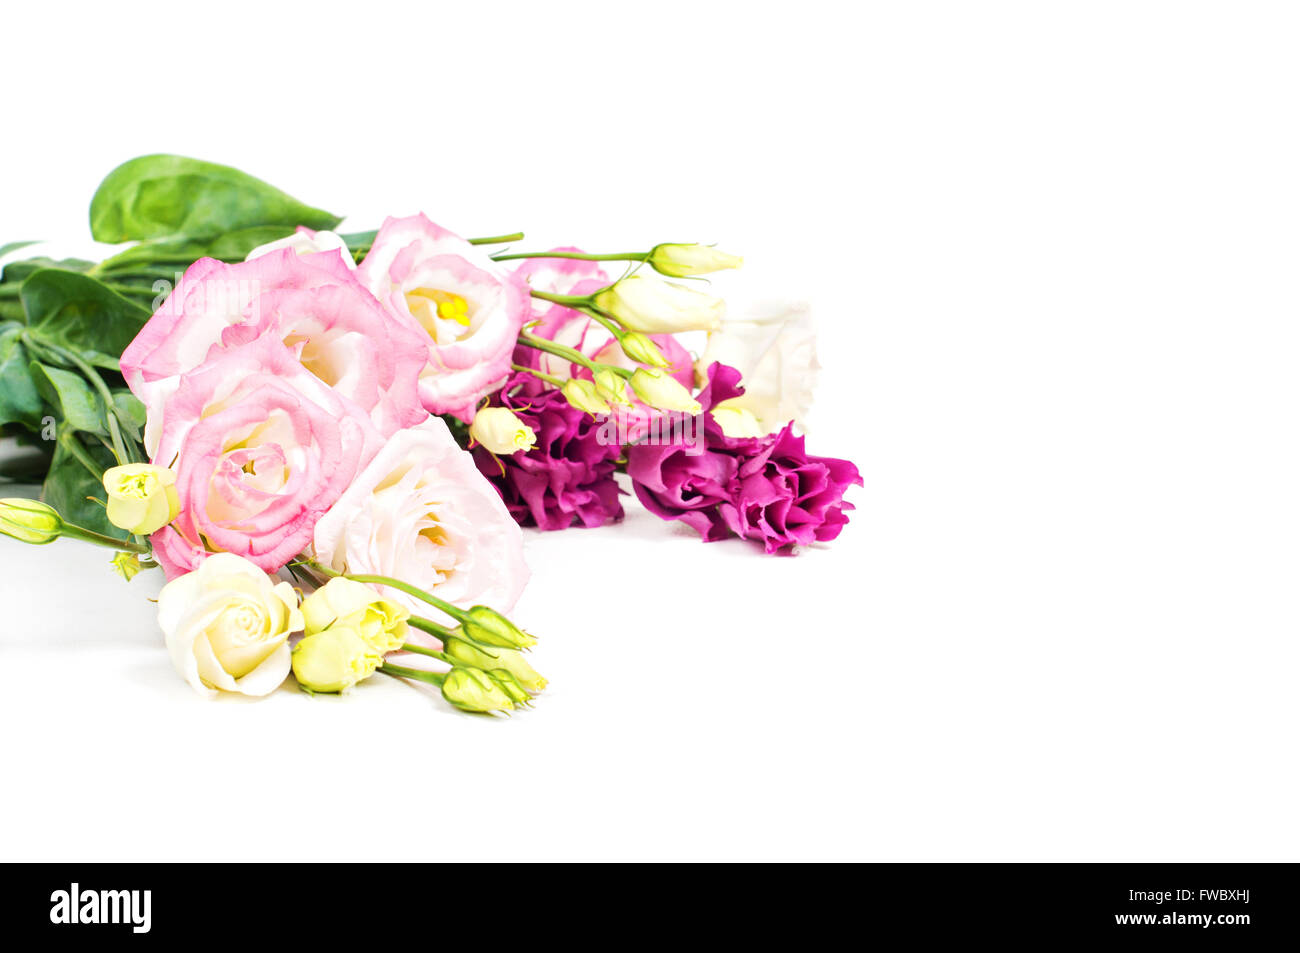 Beautiful flowers in studio on the light background - Stock Image